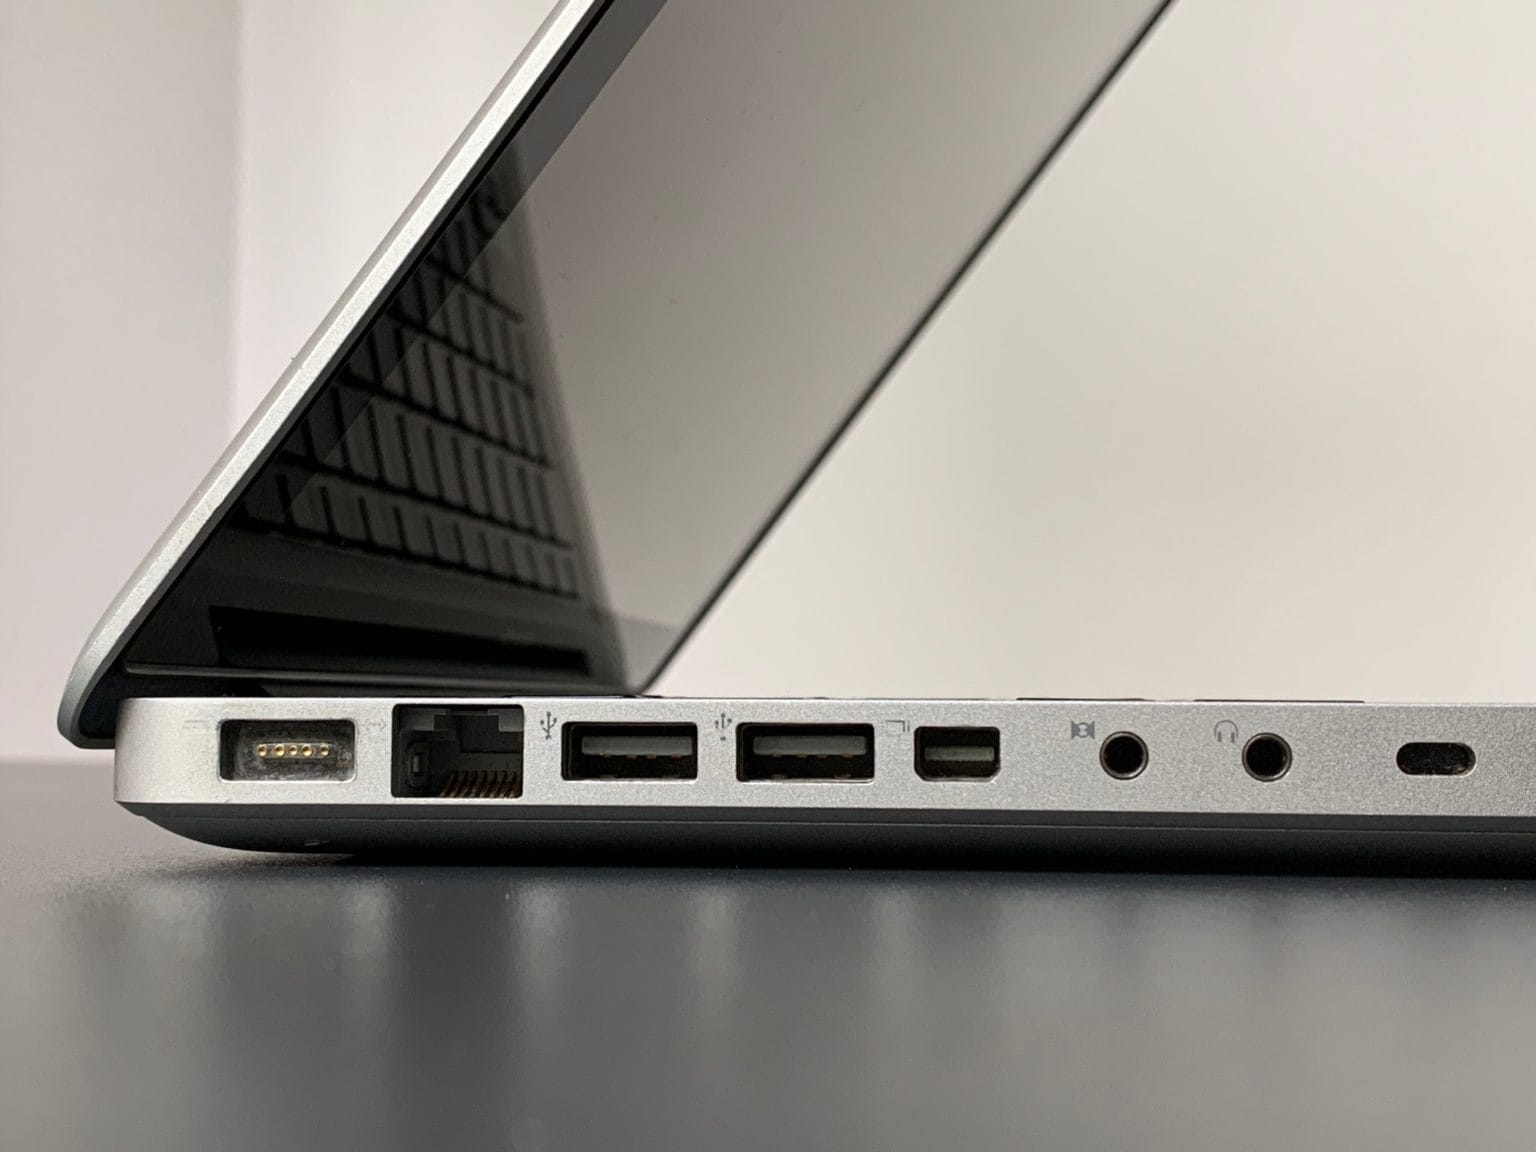 macbook review ports